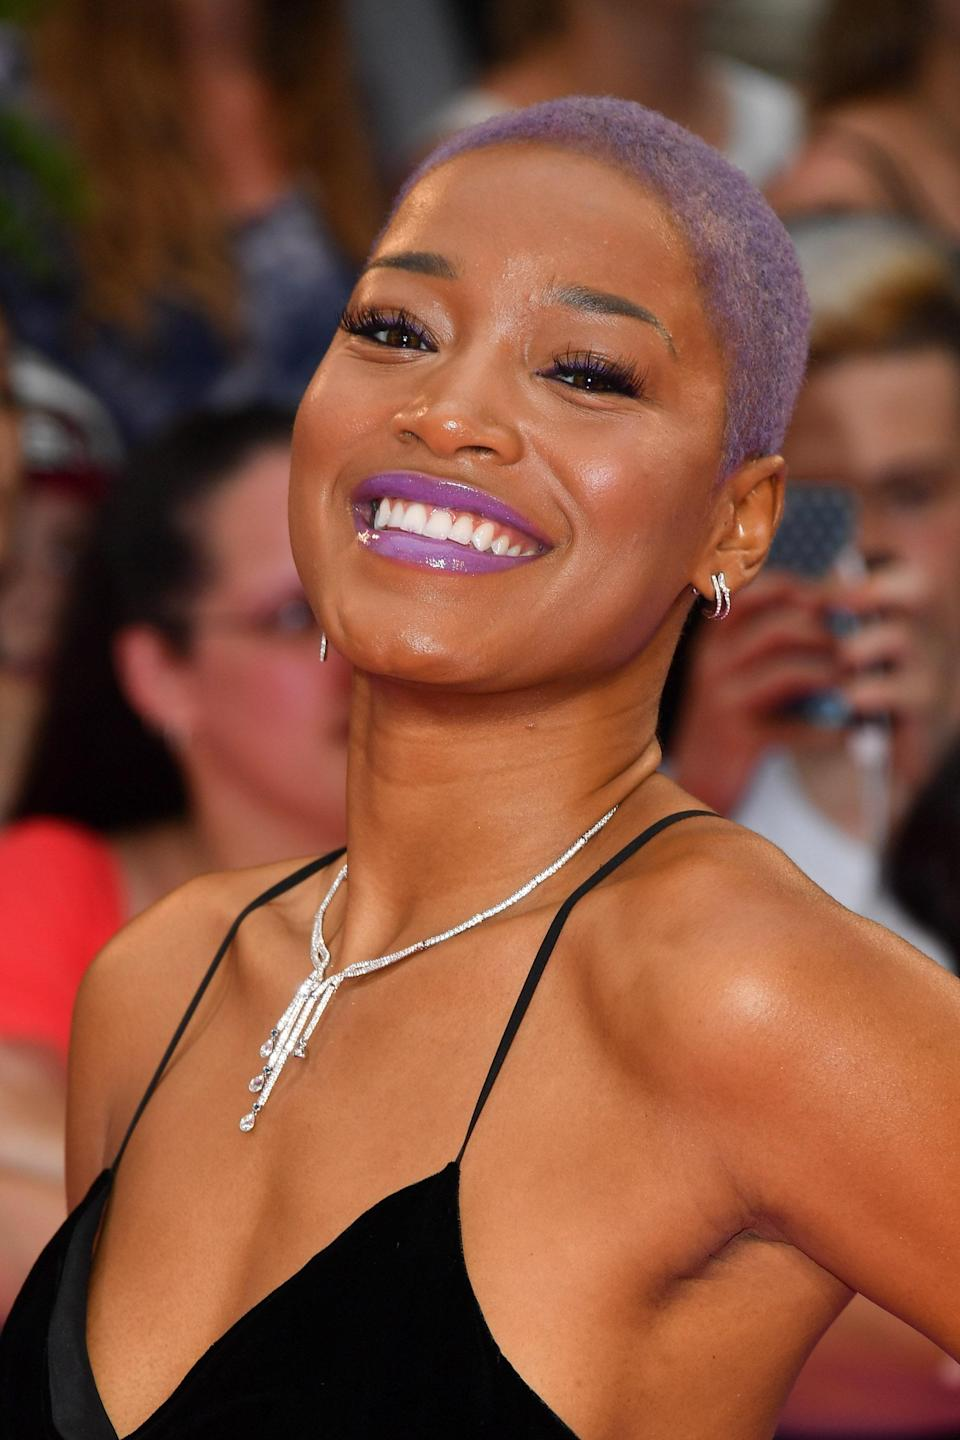 "<a href=""https://www.glamour.com/story/keke-palmer-just-shaved-off-all-her-hair?mbid=synd_yahoo_rss"" rel=""nofollow noopener"" target=""_blank"" data-ylk=""slk:She dyed it pink"" class=""link rapid-noclick-resp"">She dyed it pink</a> and then <a href=""https://www.glamour.com/story/keke-palmer-purple-buzz-cut?mbid=synd_yahoo_rss"" rel=""nofollow noopener"" target=""_blank"" data-ylk=""slk:she dyed it purple"" class=""link rapid-noclick-resp"">she dyed it purple</a>. Palmer had so much fun with her buzz cut and it showed."